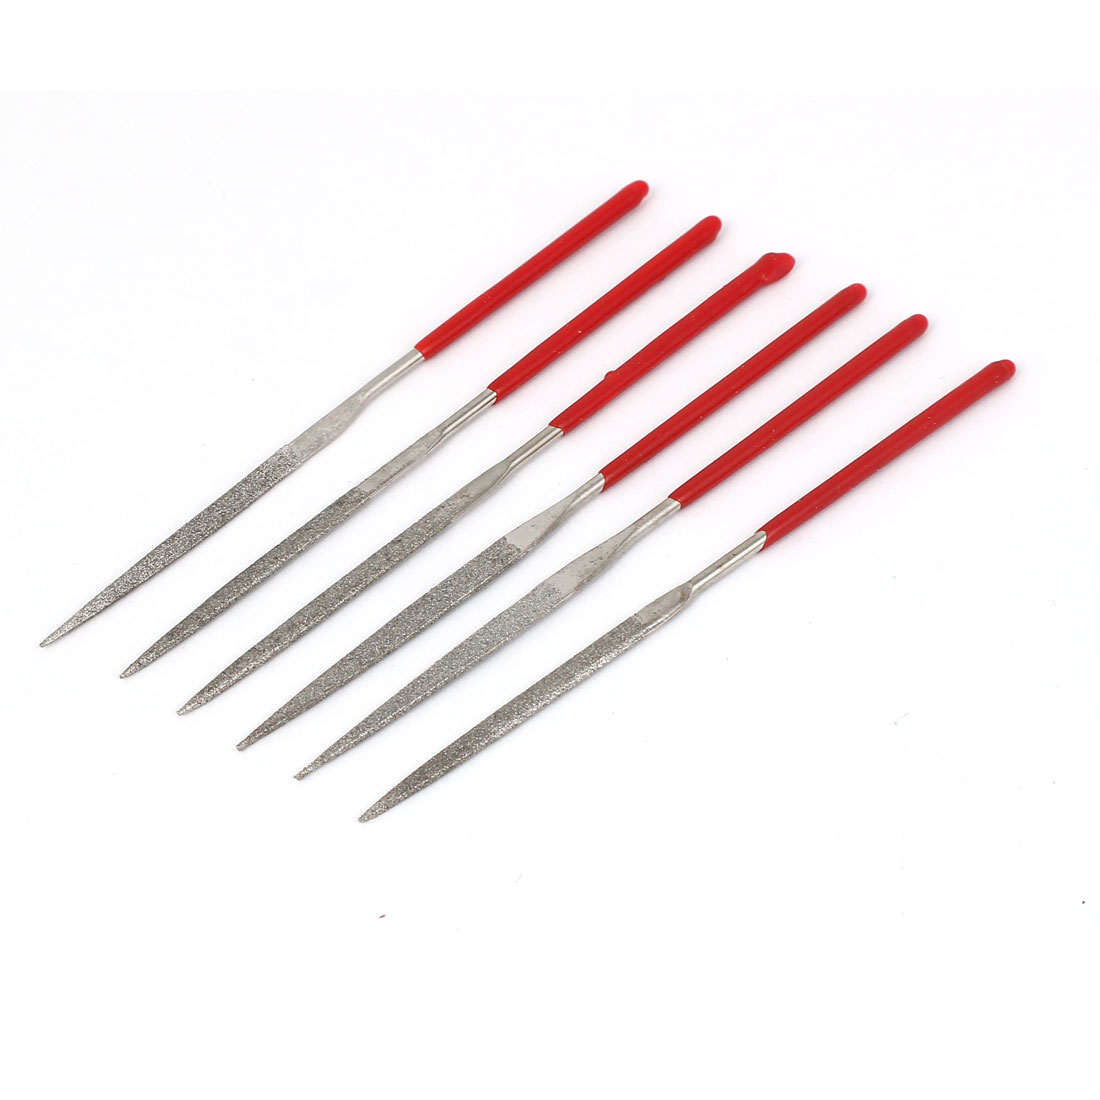 3mm x 100mm Red Plastic Coated Handle Jewelers Needle Files 6 in 1